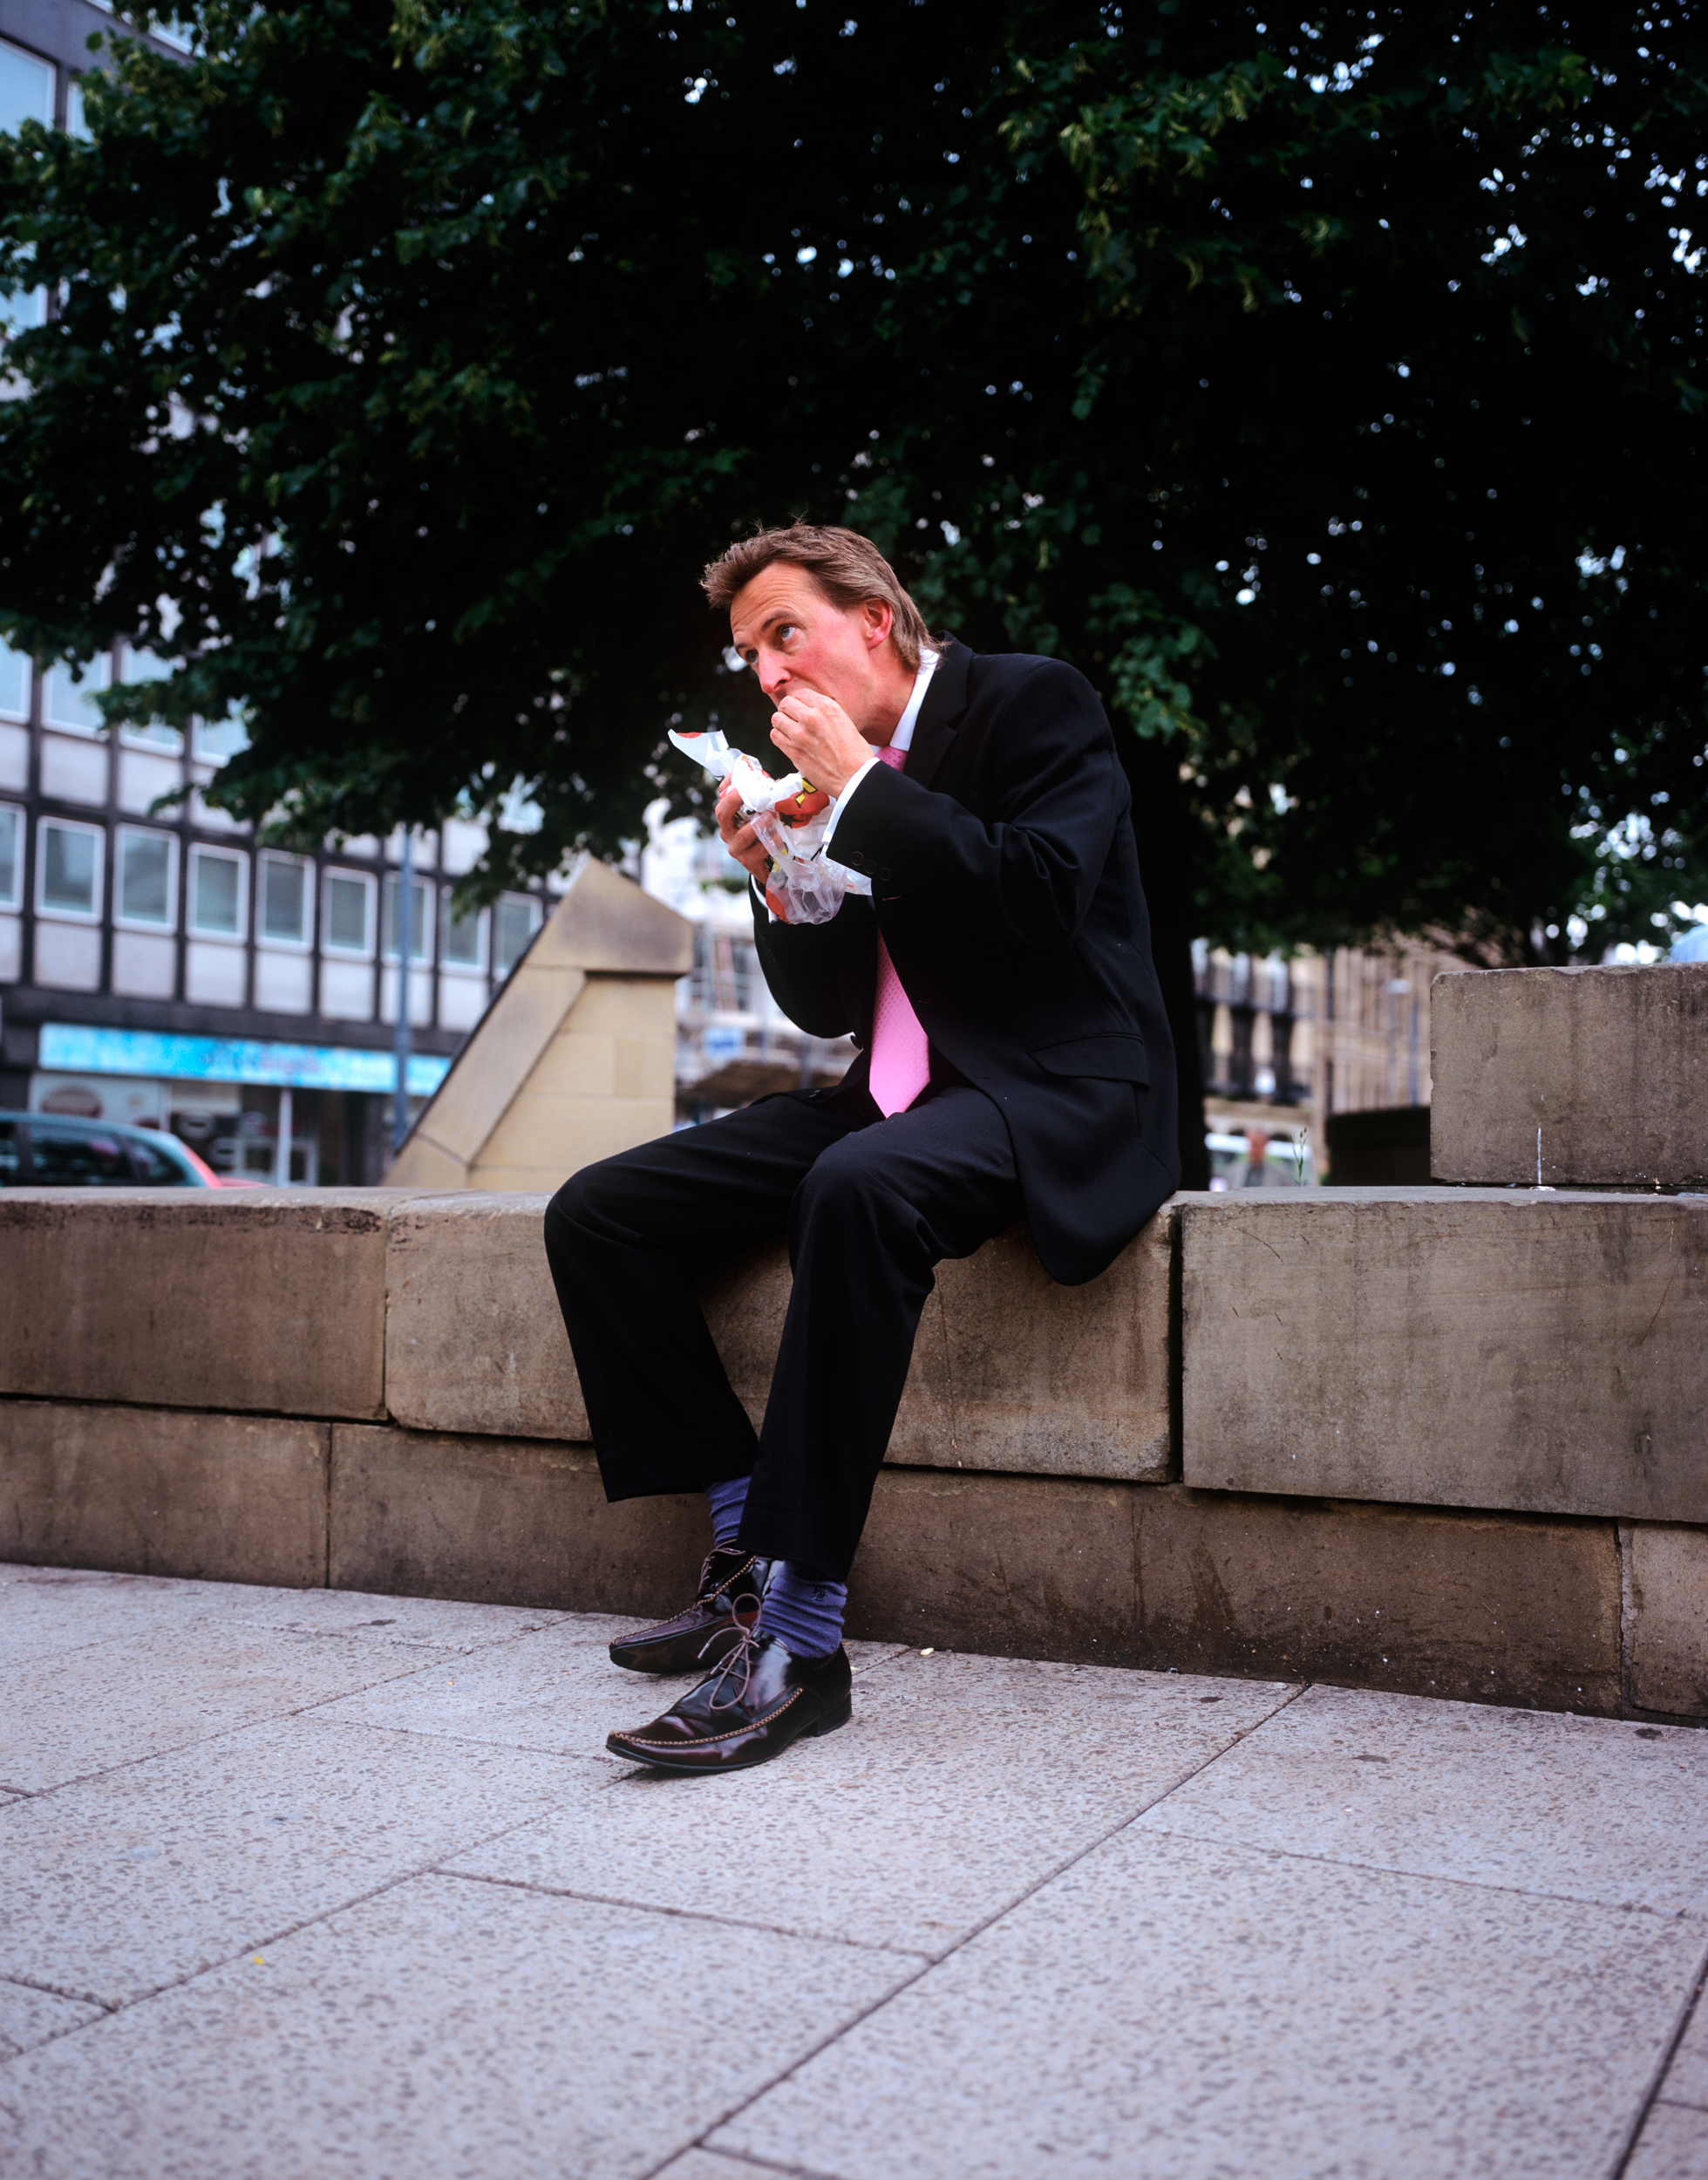 Lunch Hour - Across the north of England, people make time for a bite to eat away from their desks.